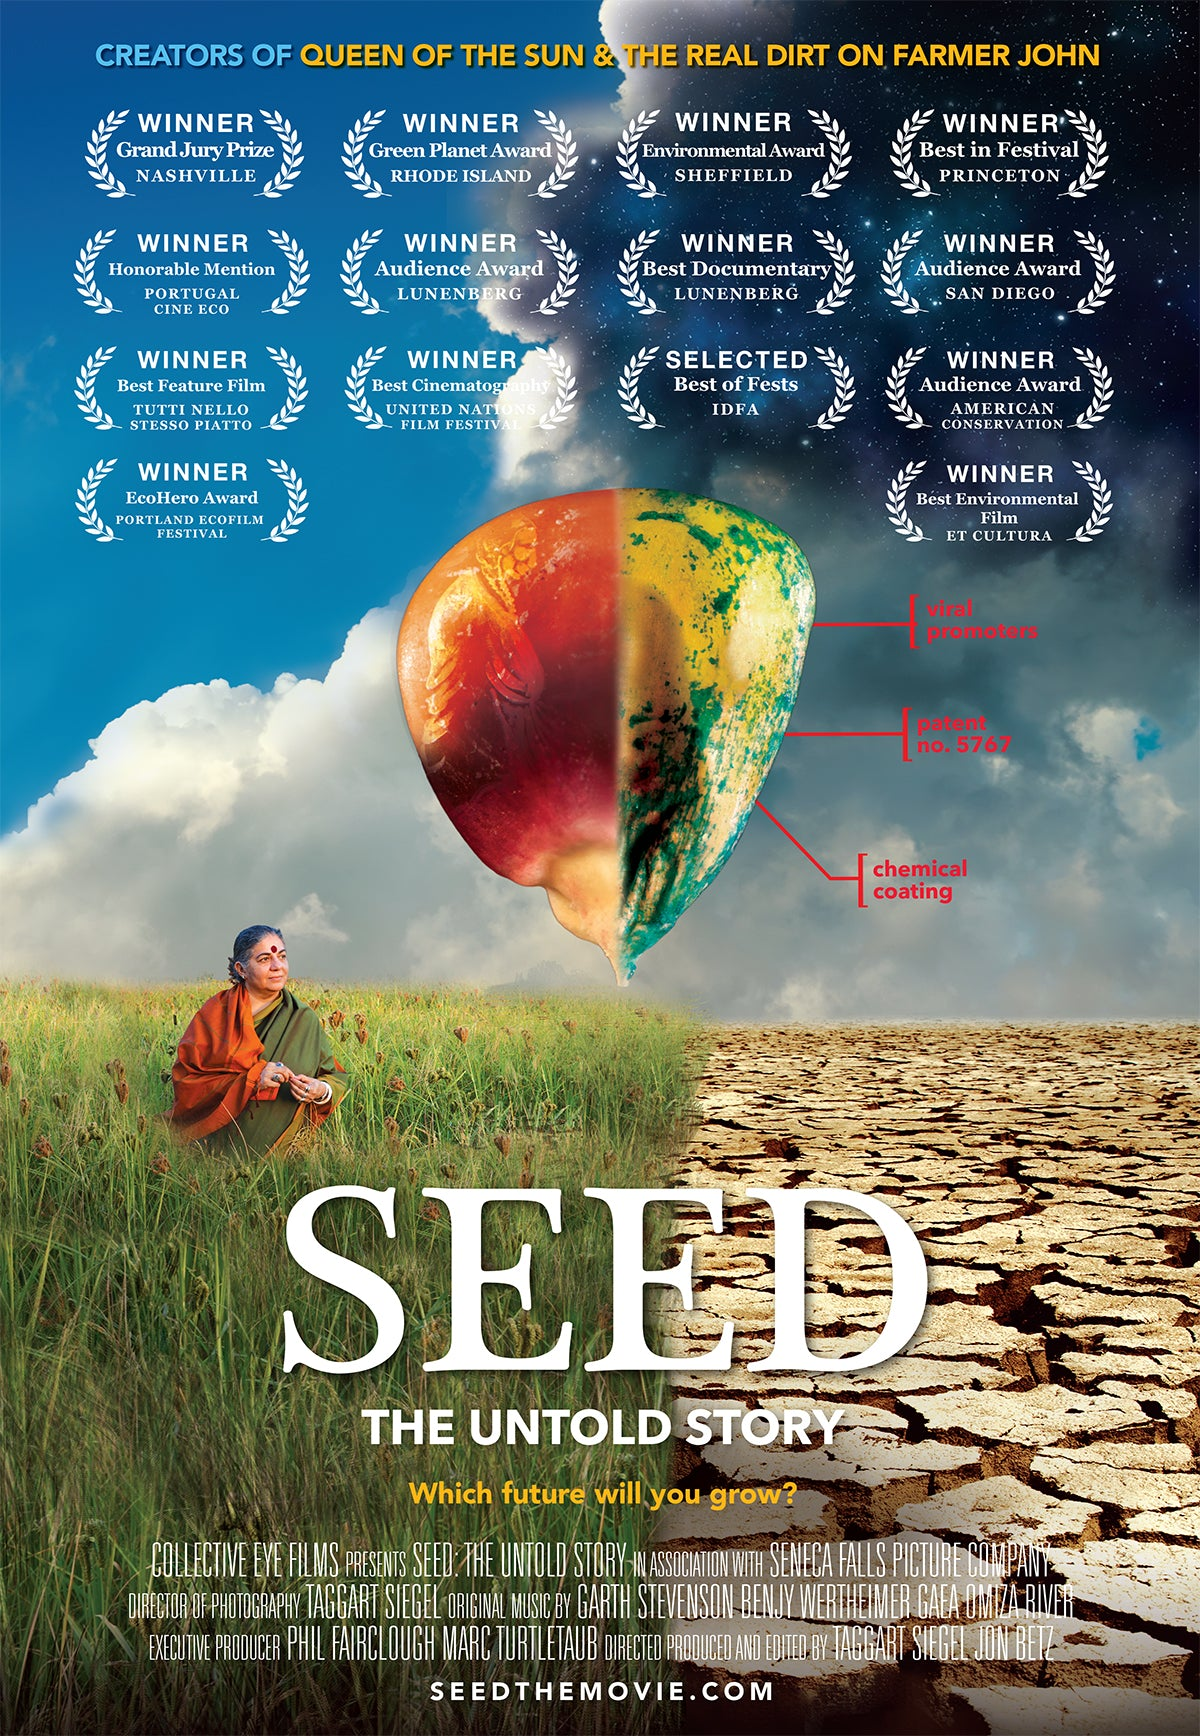 SEED: The Untold Story (Watch Now)